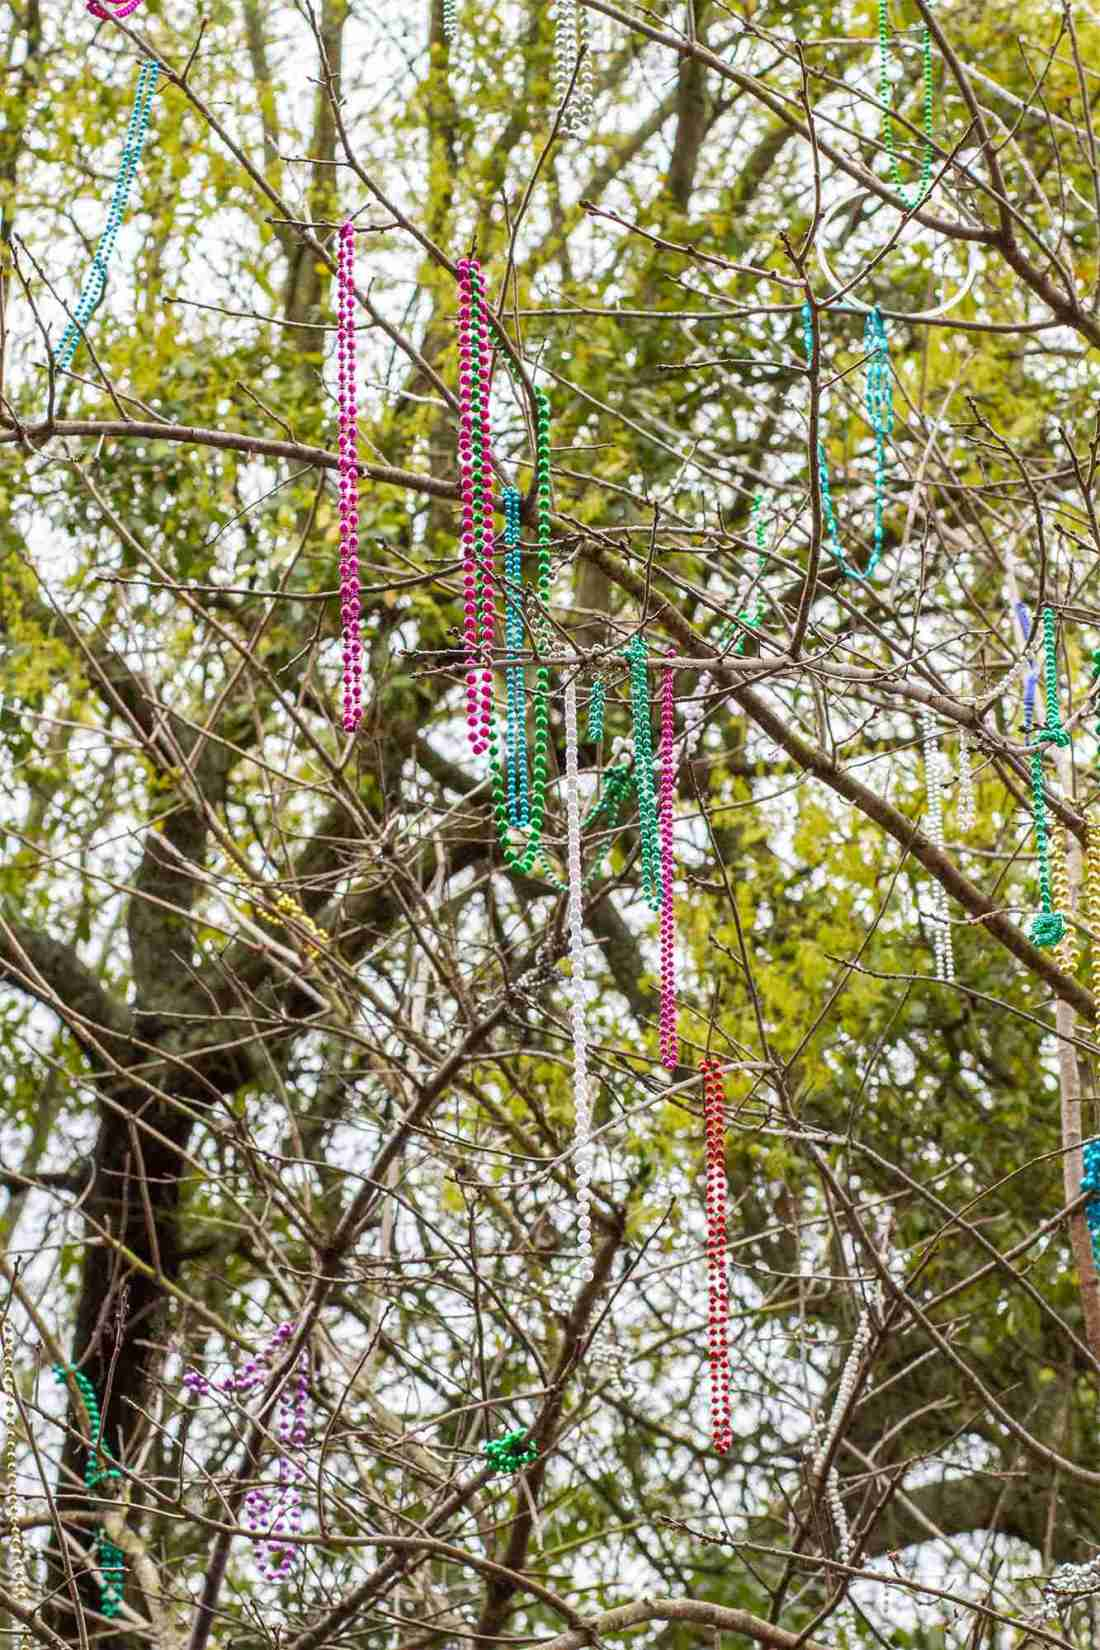 Tree with colorful Mardi Gras beads draping from it in New Orleans